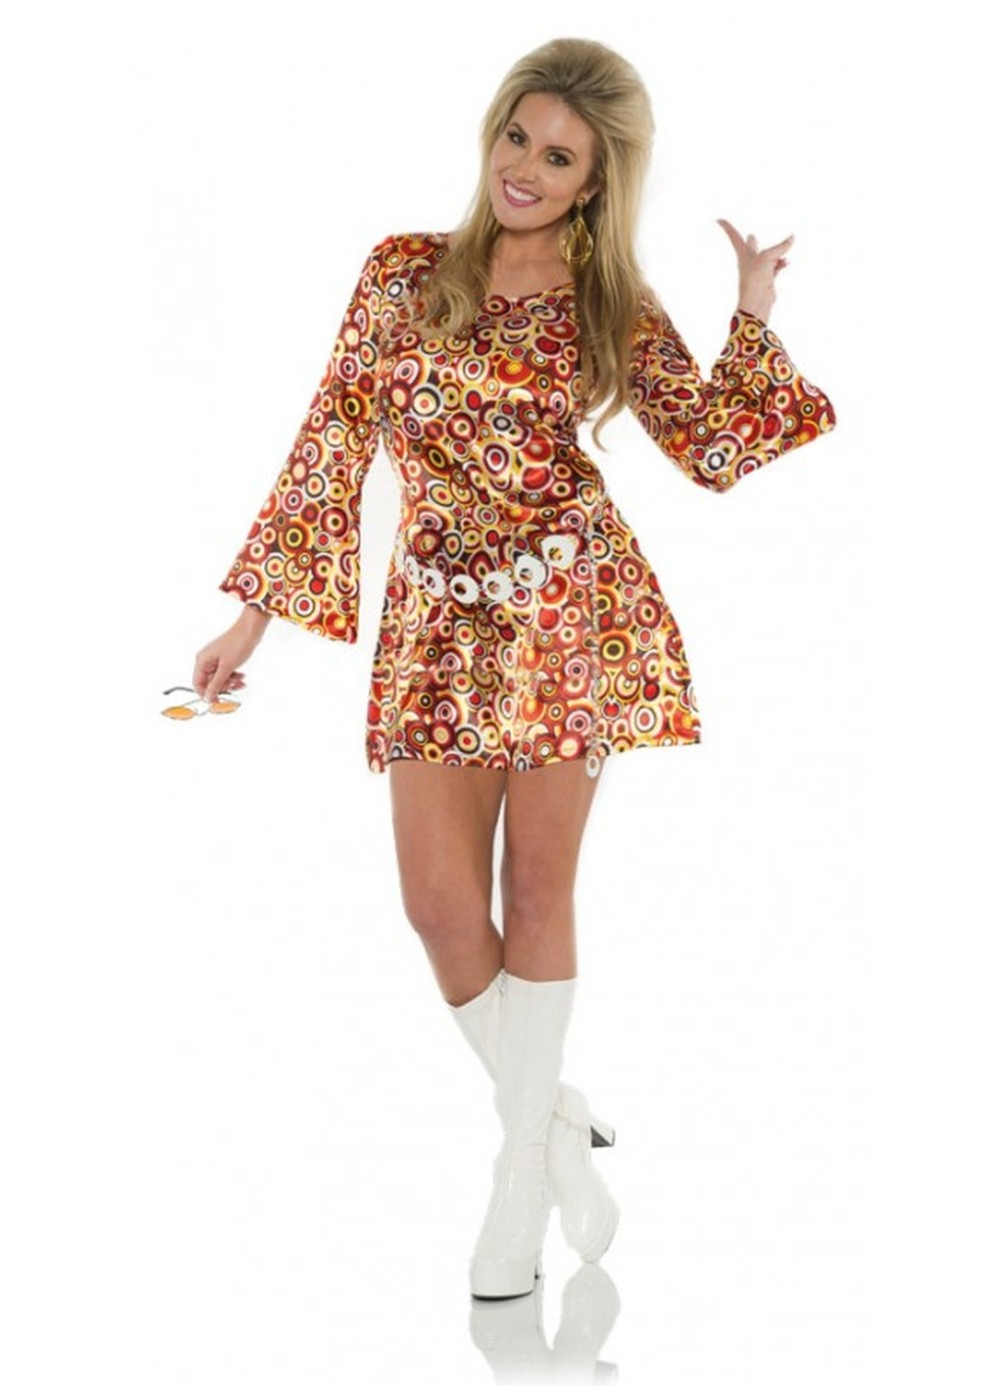 Disco Dress Women Costume